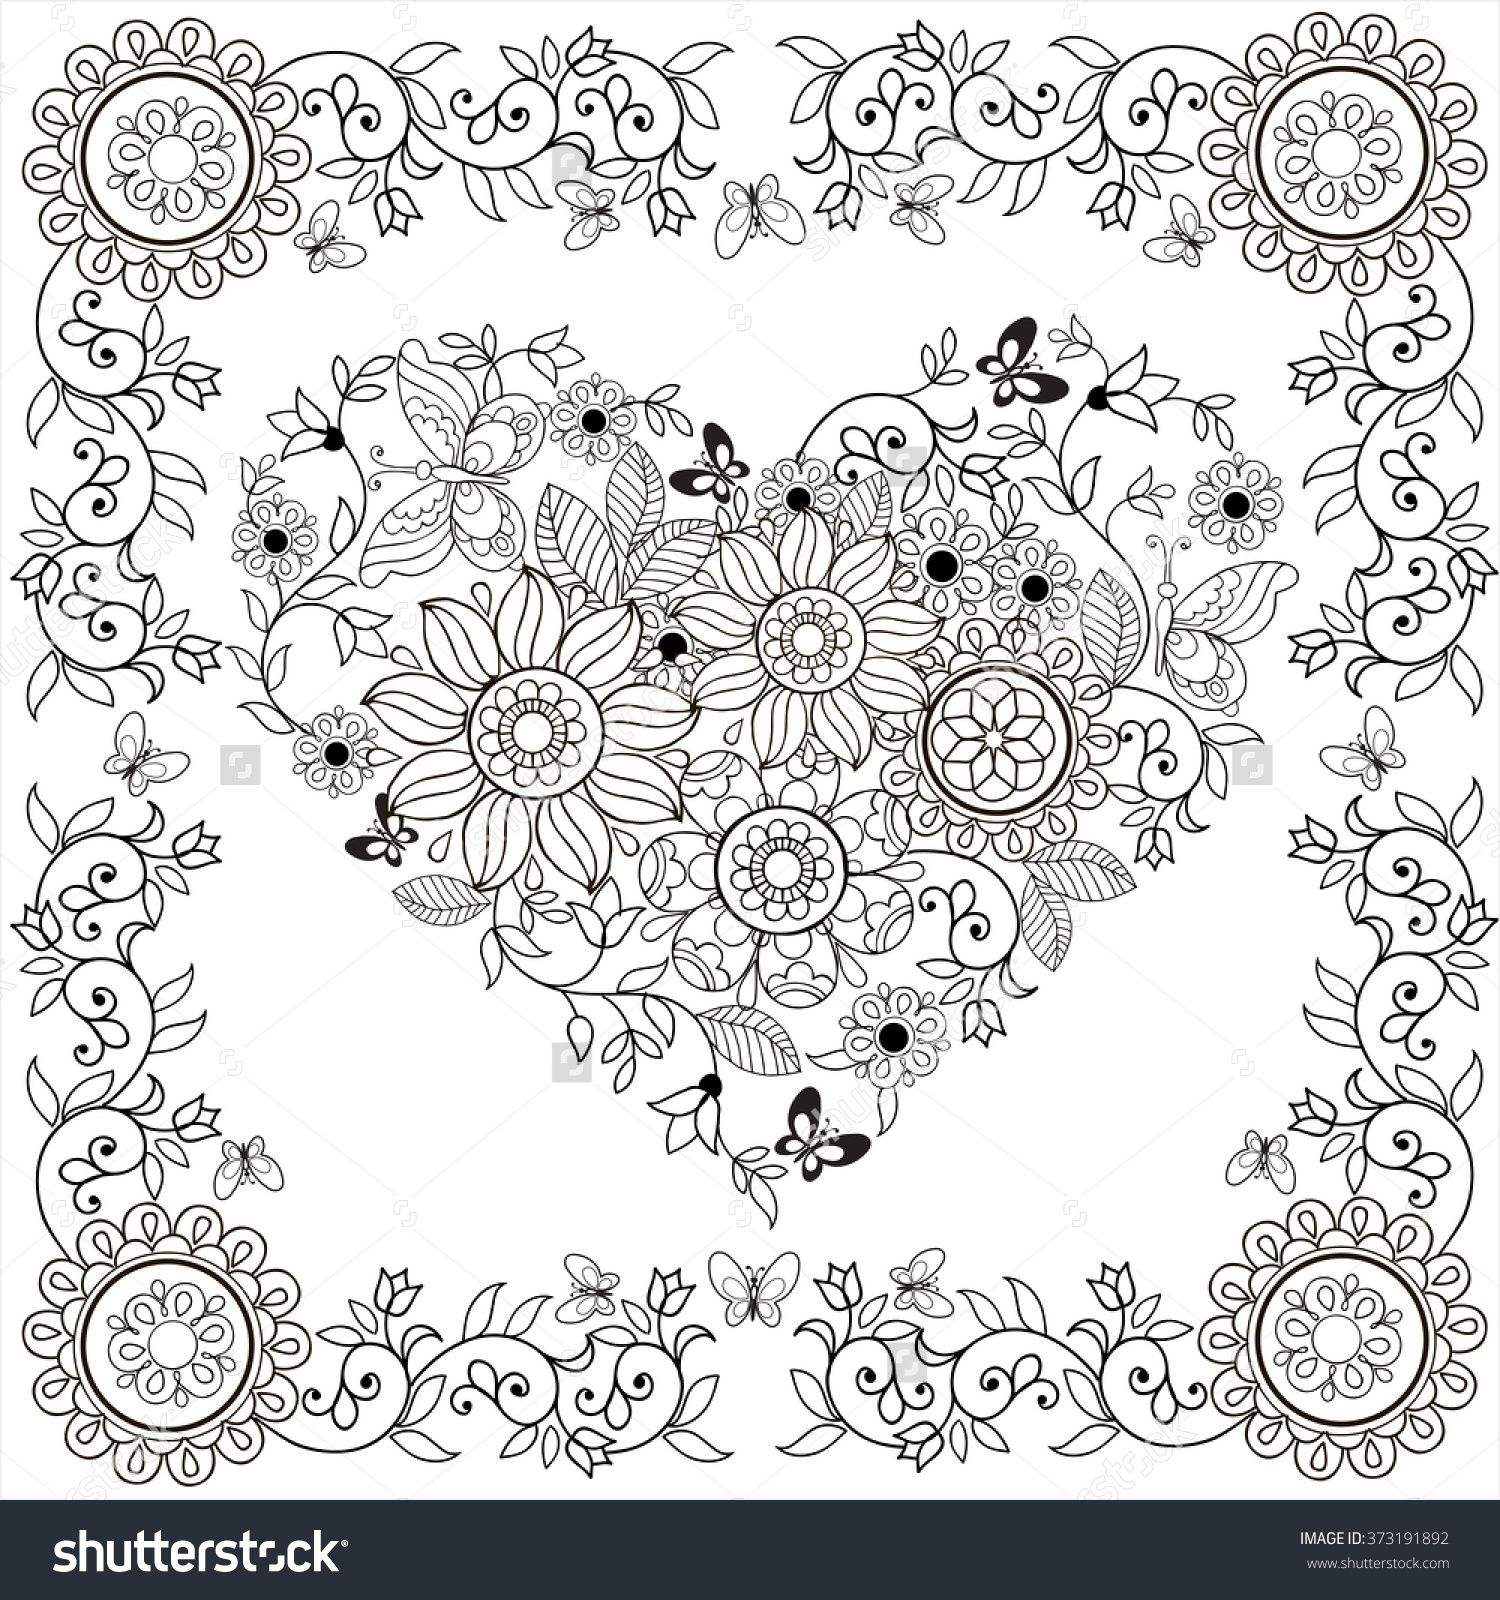 Coloring book Decorative heart of flowers and butterflies in floral ...